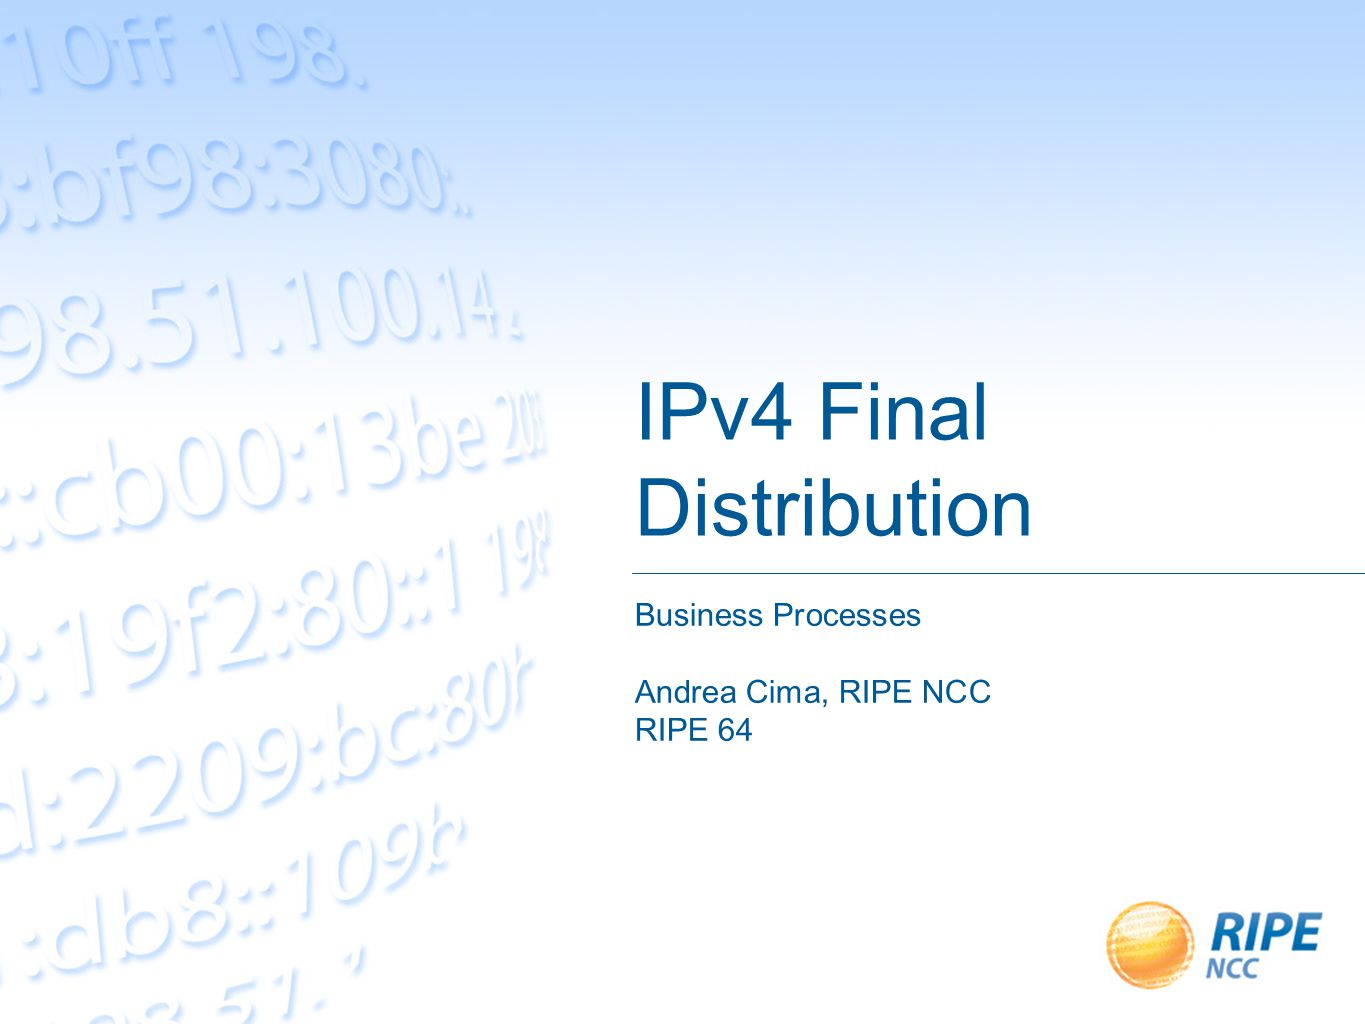 IPv4 Final Distribution Business Processes Andrea Cima, RIPE NCC RIPE 64